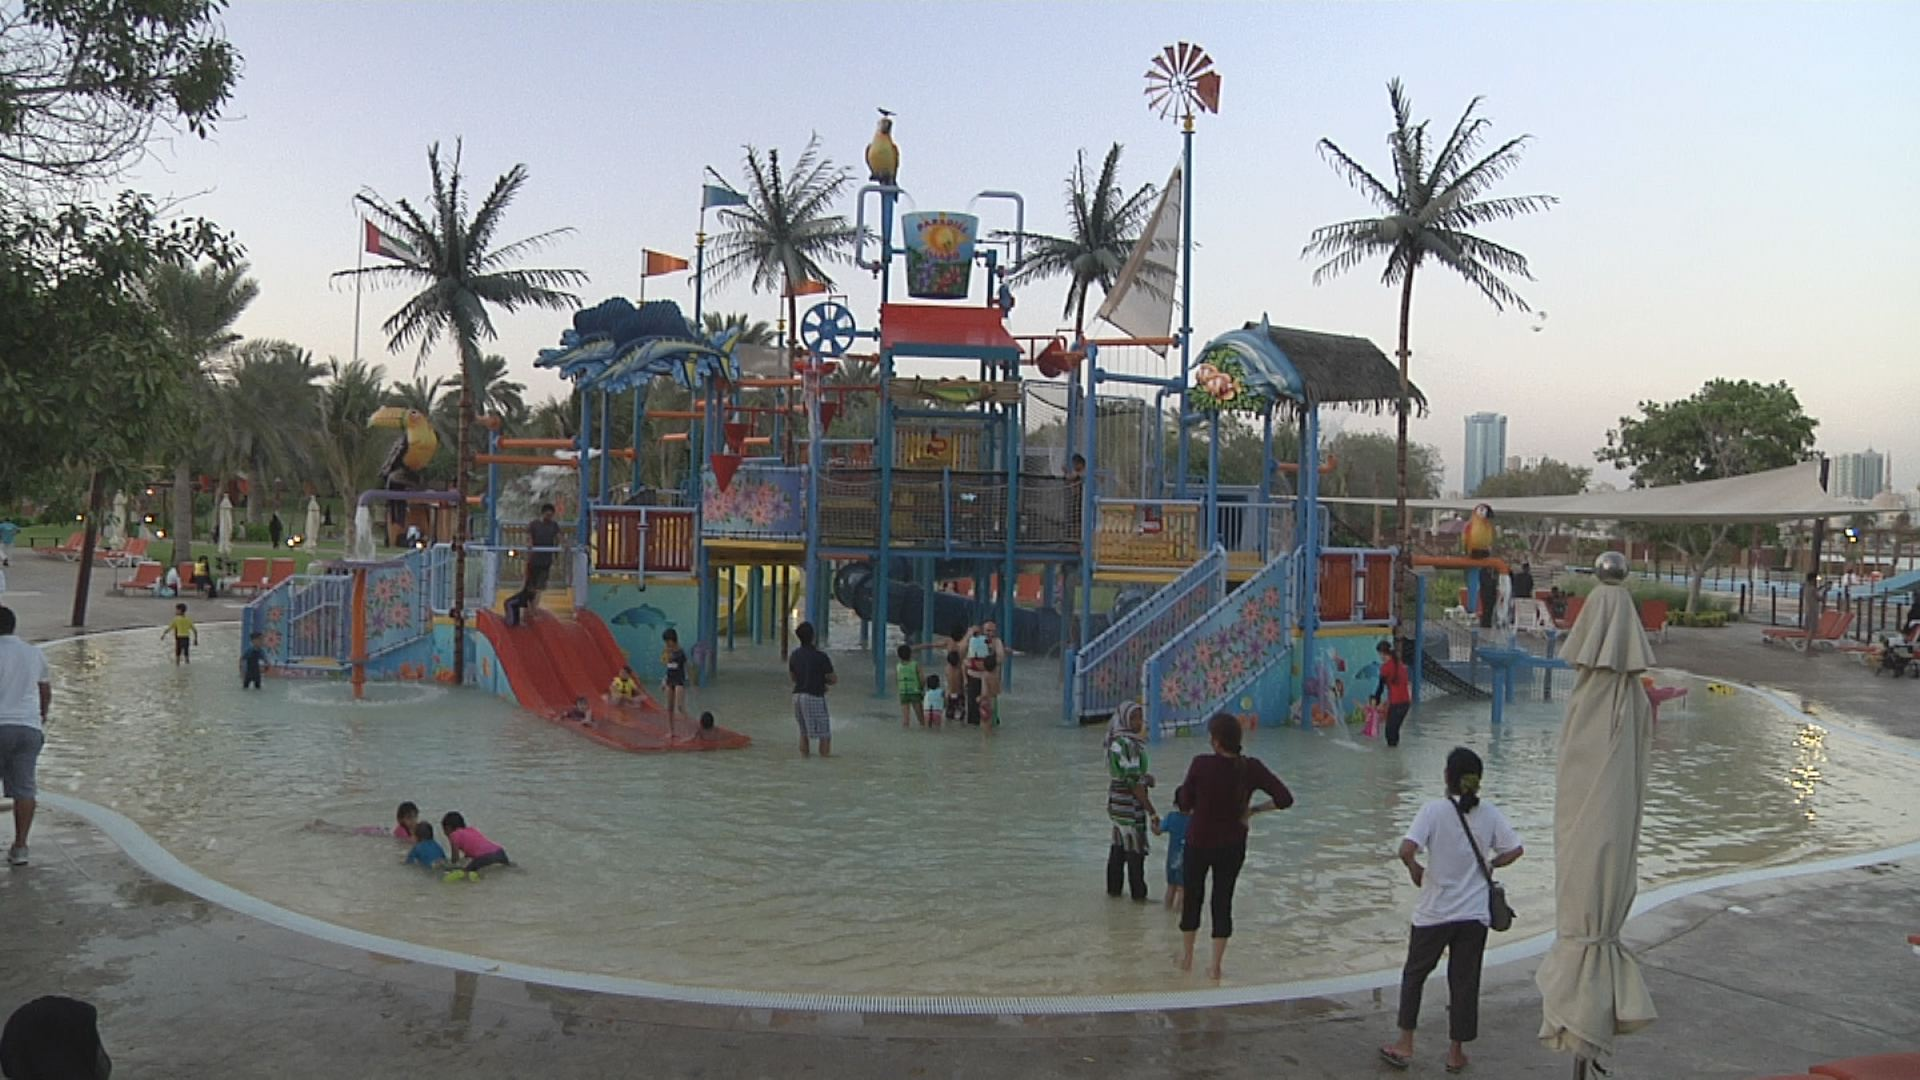 Video - Sharjah - Wasserpark